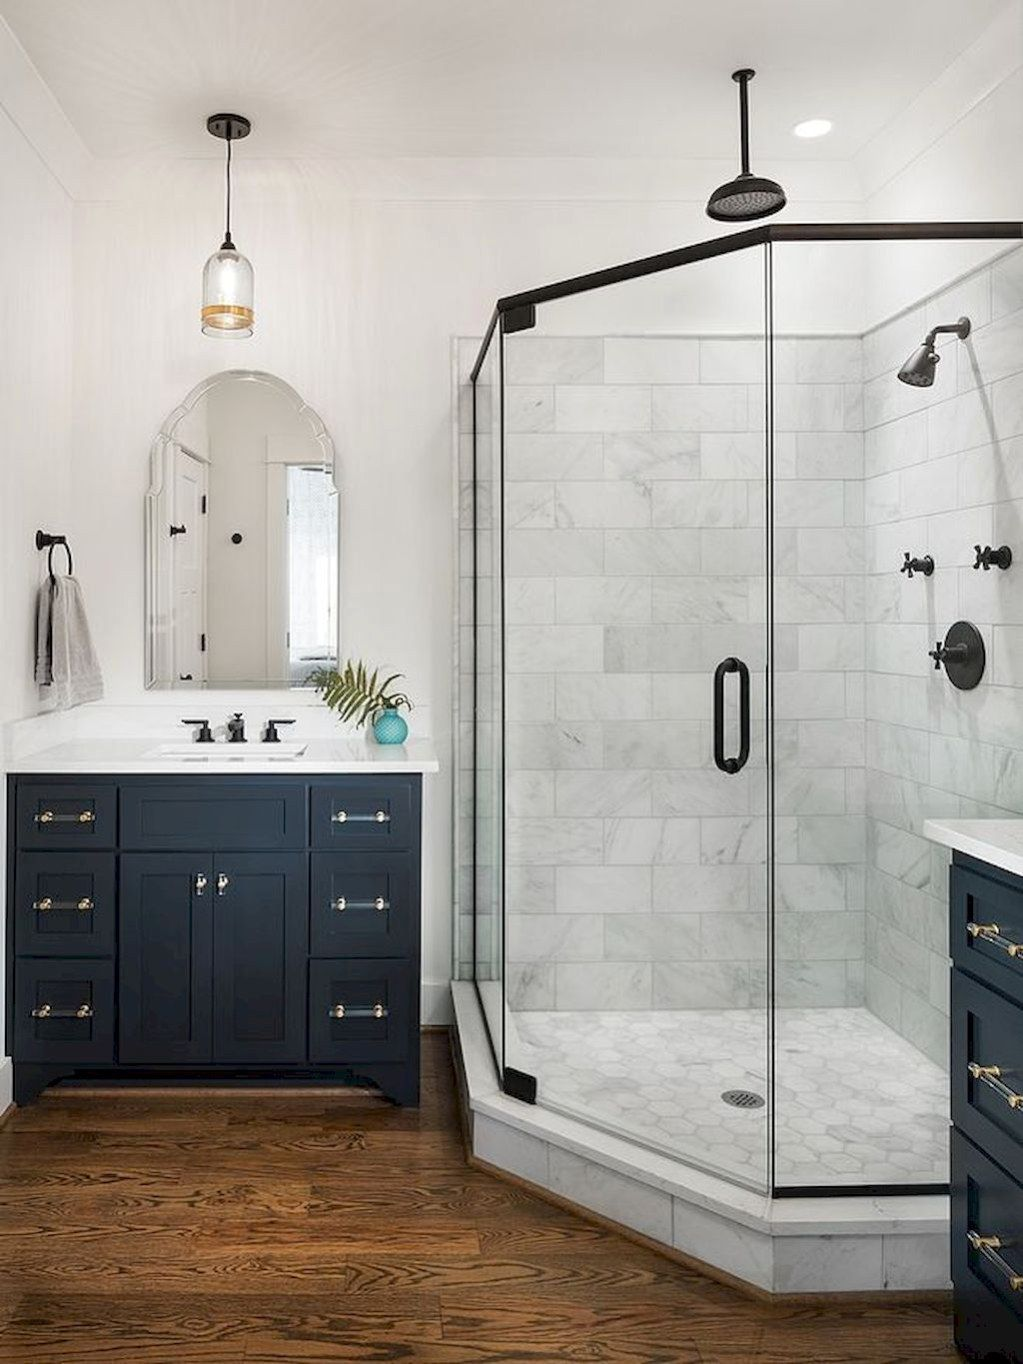 Perhaps The Primary Step In Selecting A Brand New Bathtub Is Determining How Much Cash You Can A Wood Floor Bathroom Guest Bathrooms Modern Farmhouse Bathroom